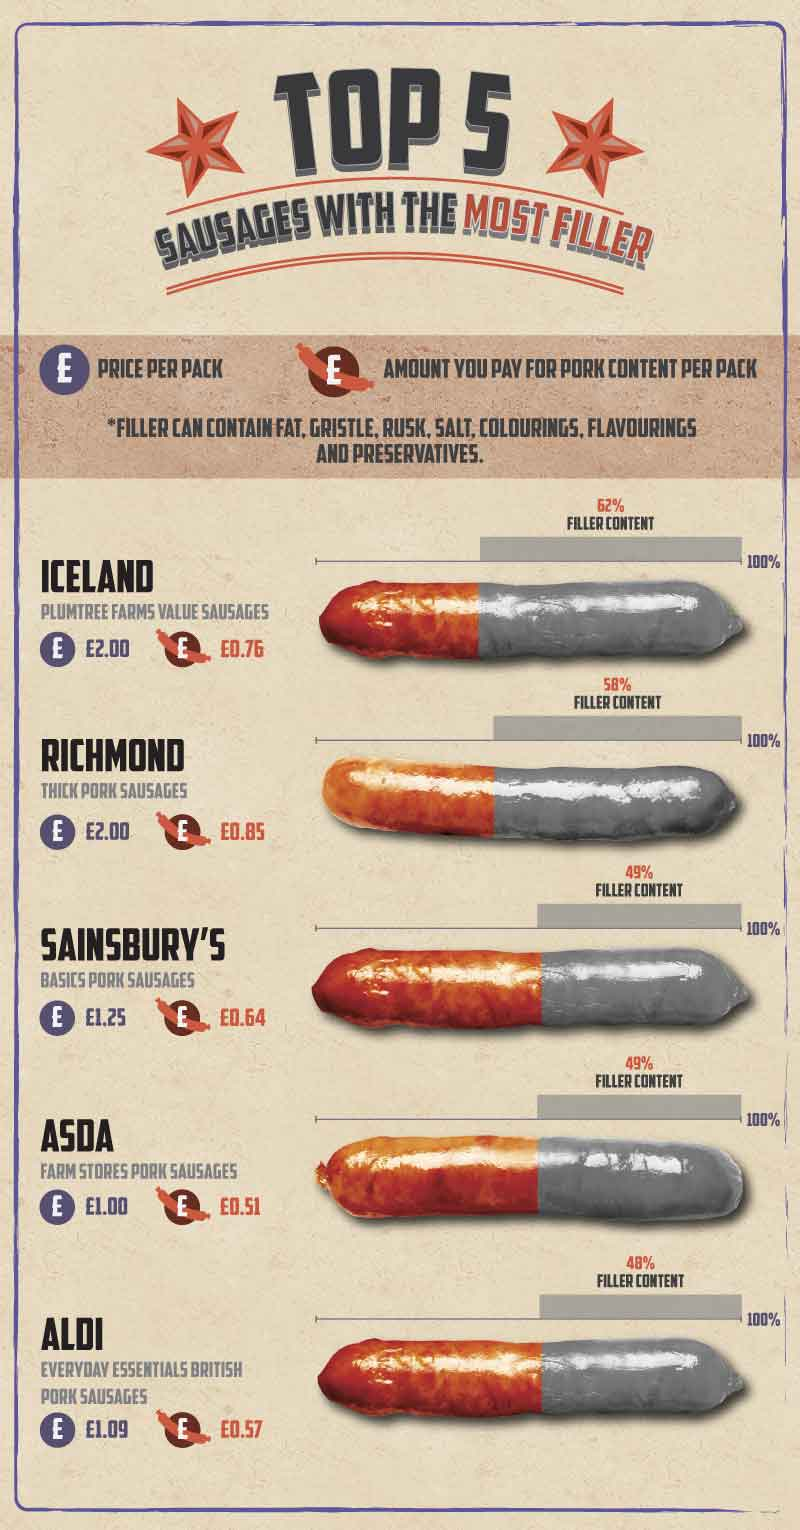 Image showing which supermarkets add the most filler to their sausage content